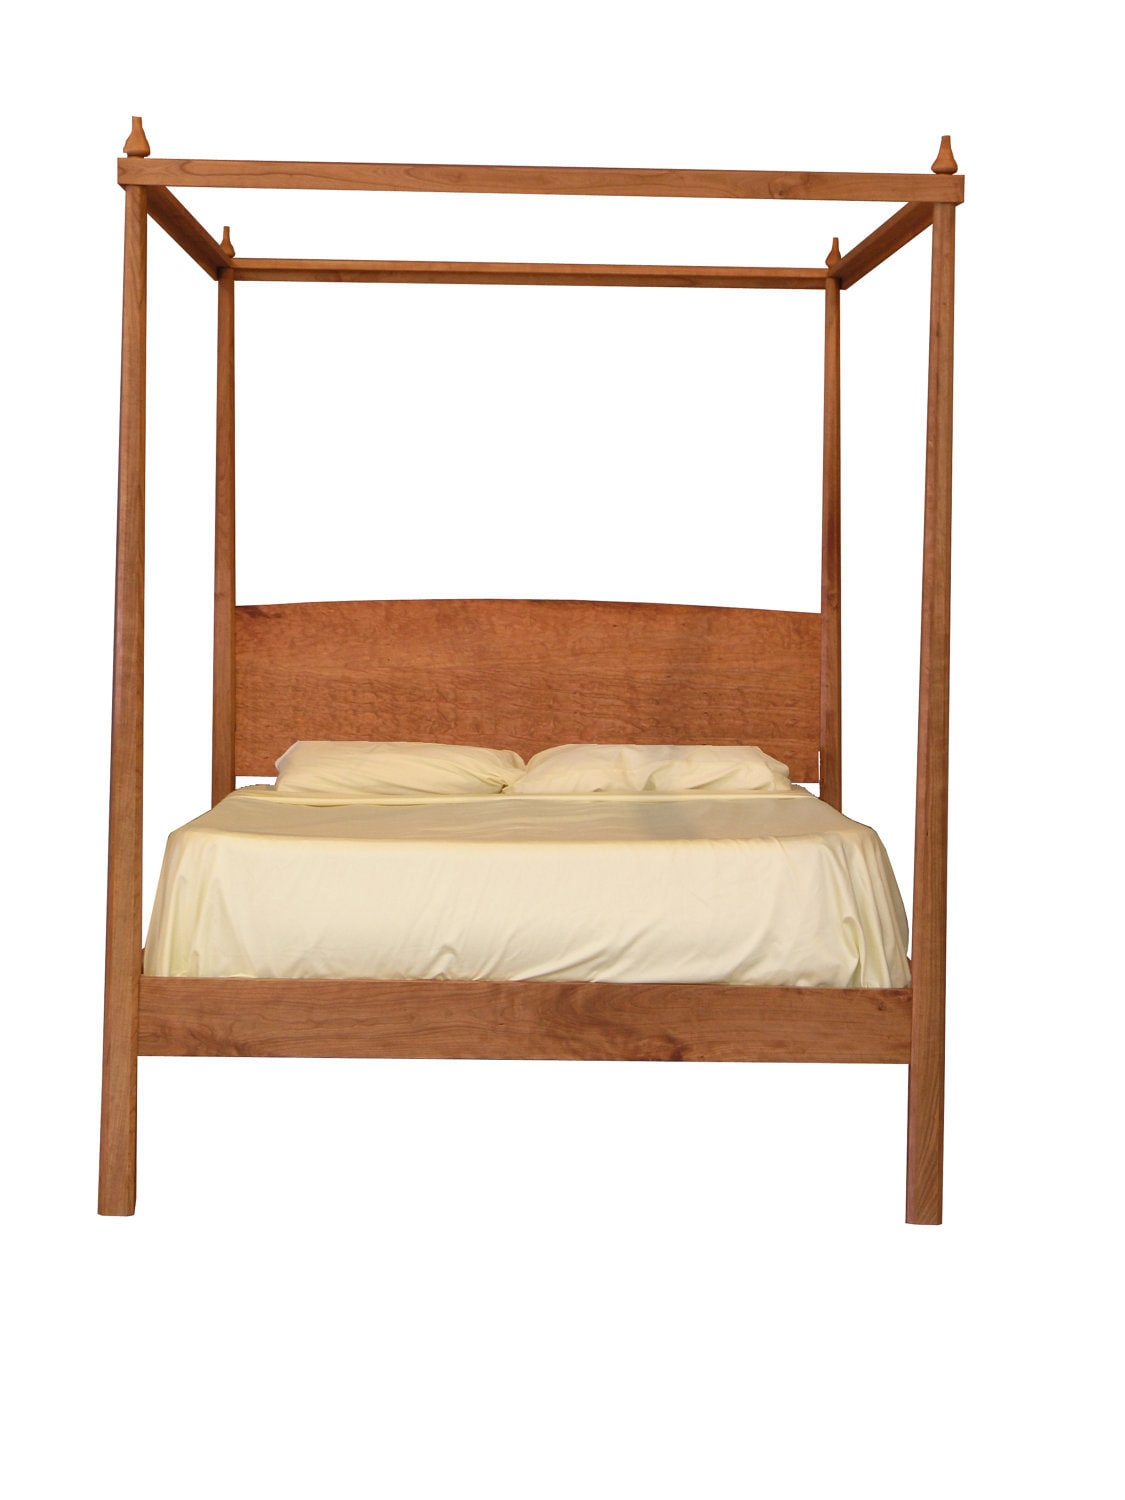 pencil post bed with canopy platform bed solid by tyfinefurniture